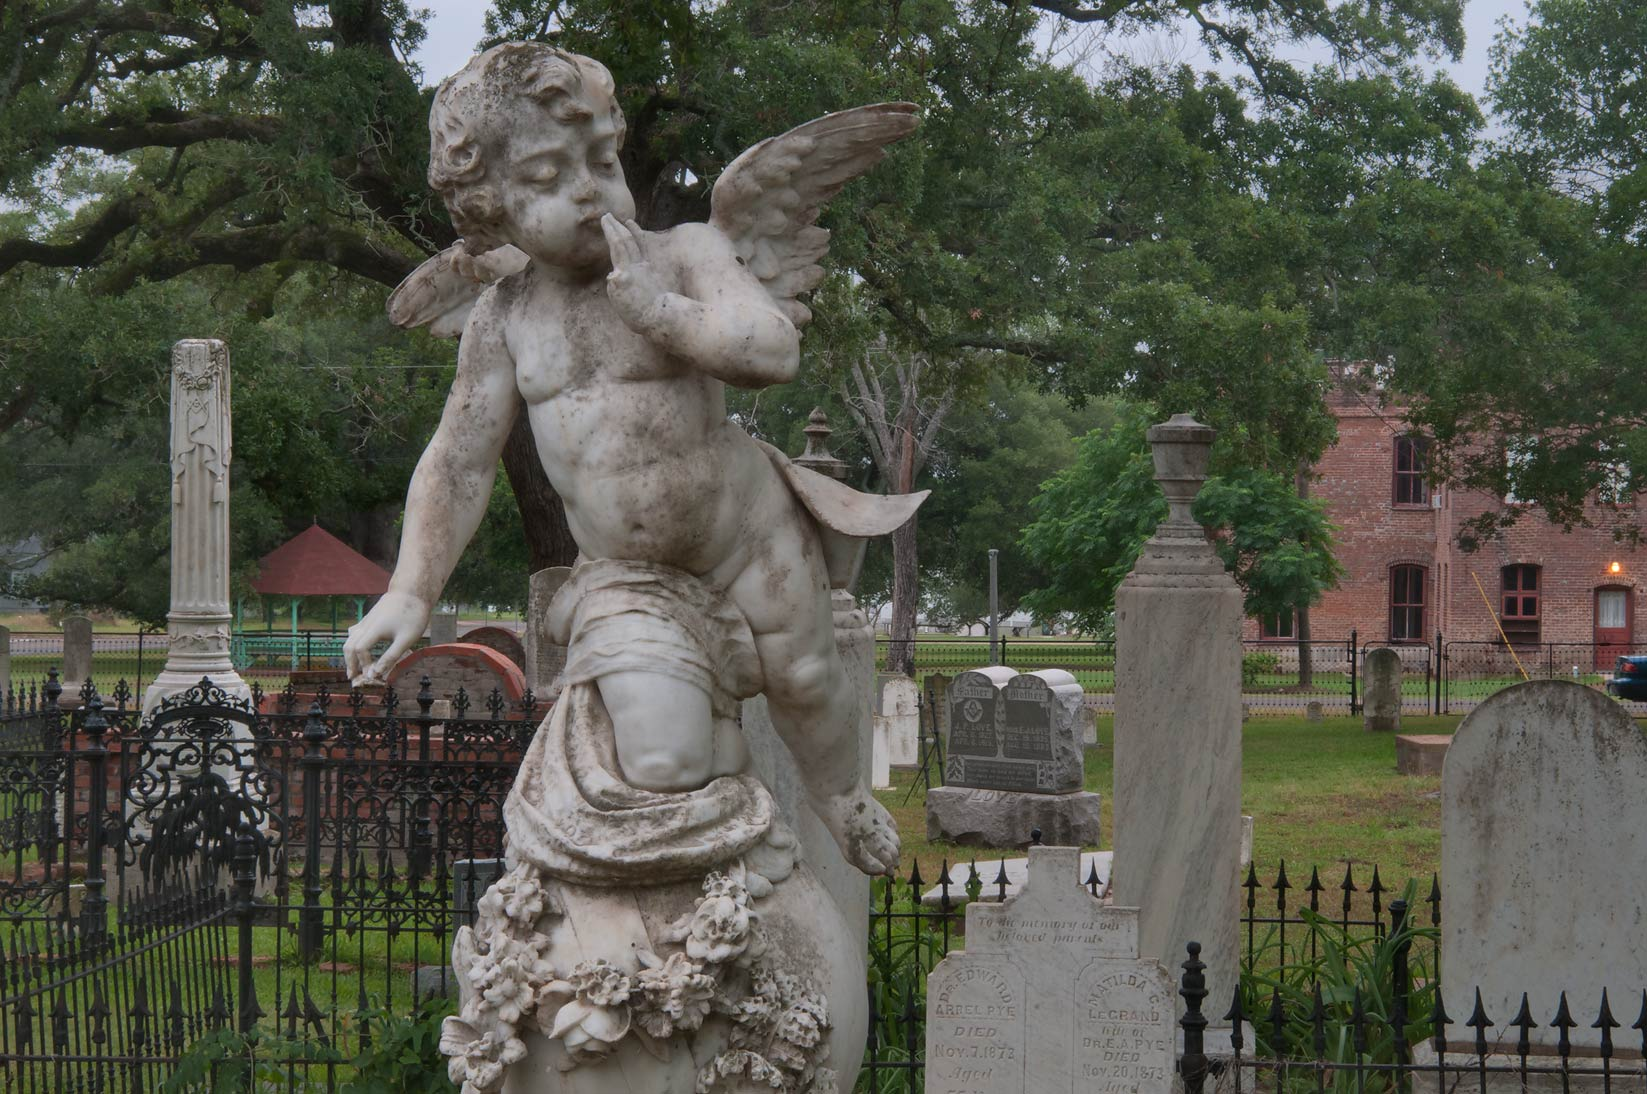 Marble angel on a tomb of Holly Robert in Calvert Cemetery. Calvert, Texas